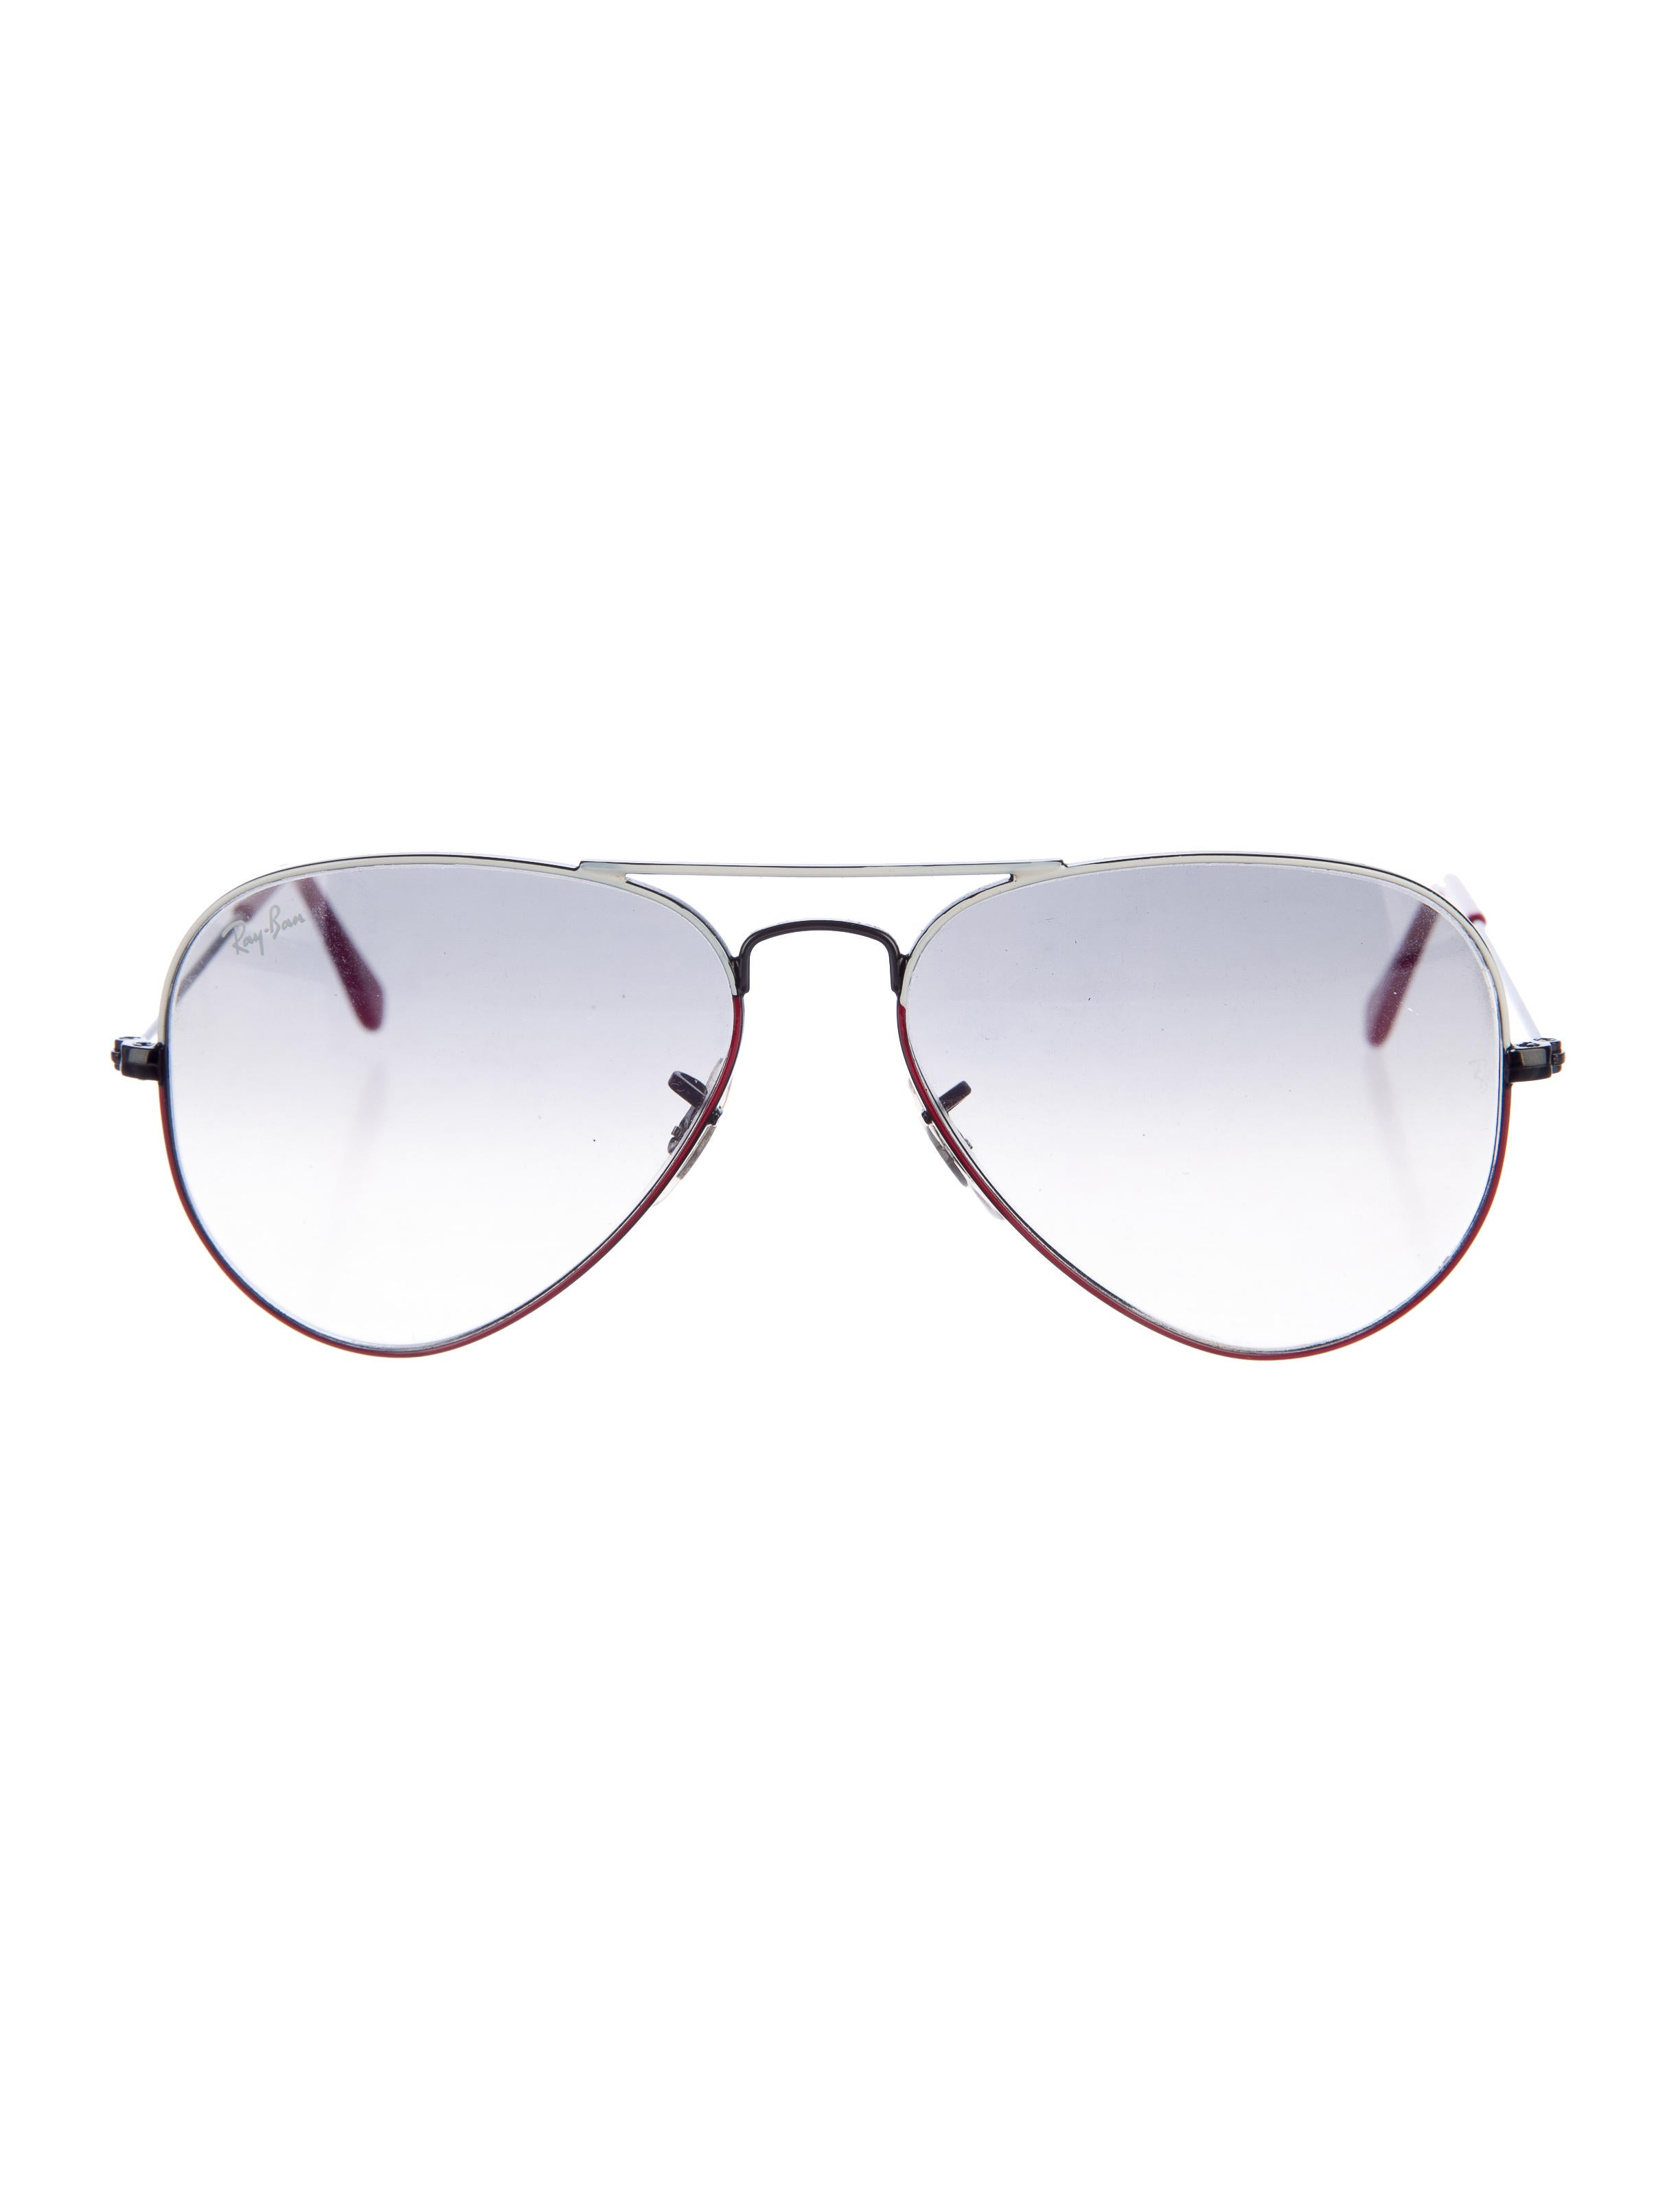 ce2a42fd3a Ray Ban 3025 Red Lenses For Outdoor - Hibernian Coins and Notes